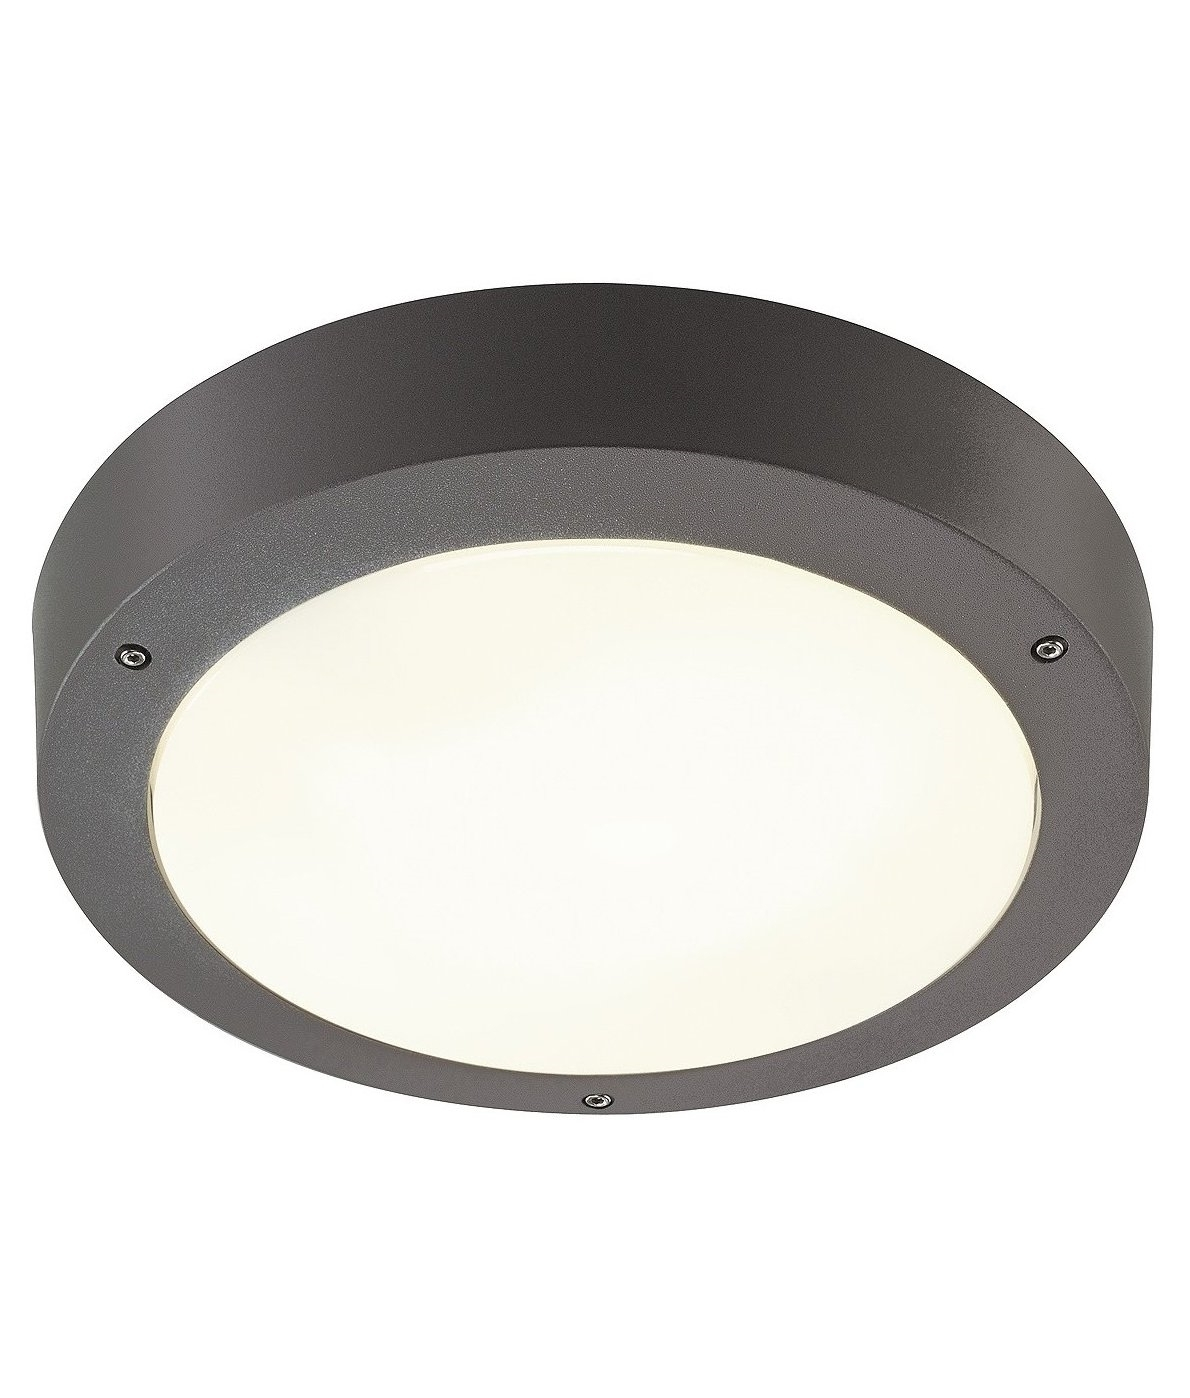 Outdoor Ceiling Pir Light | Ceilling Pertaining To Outdoor Ceiling Pir Lights (#10 of 15)